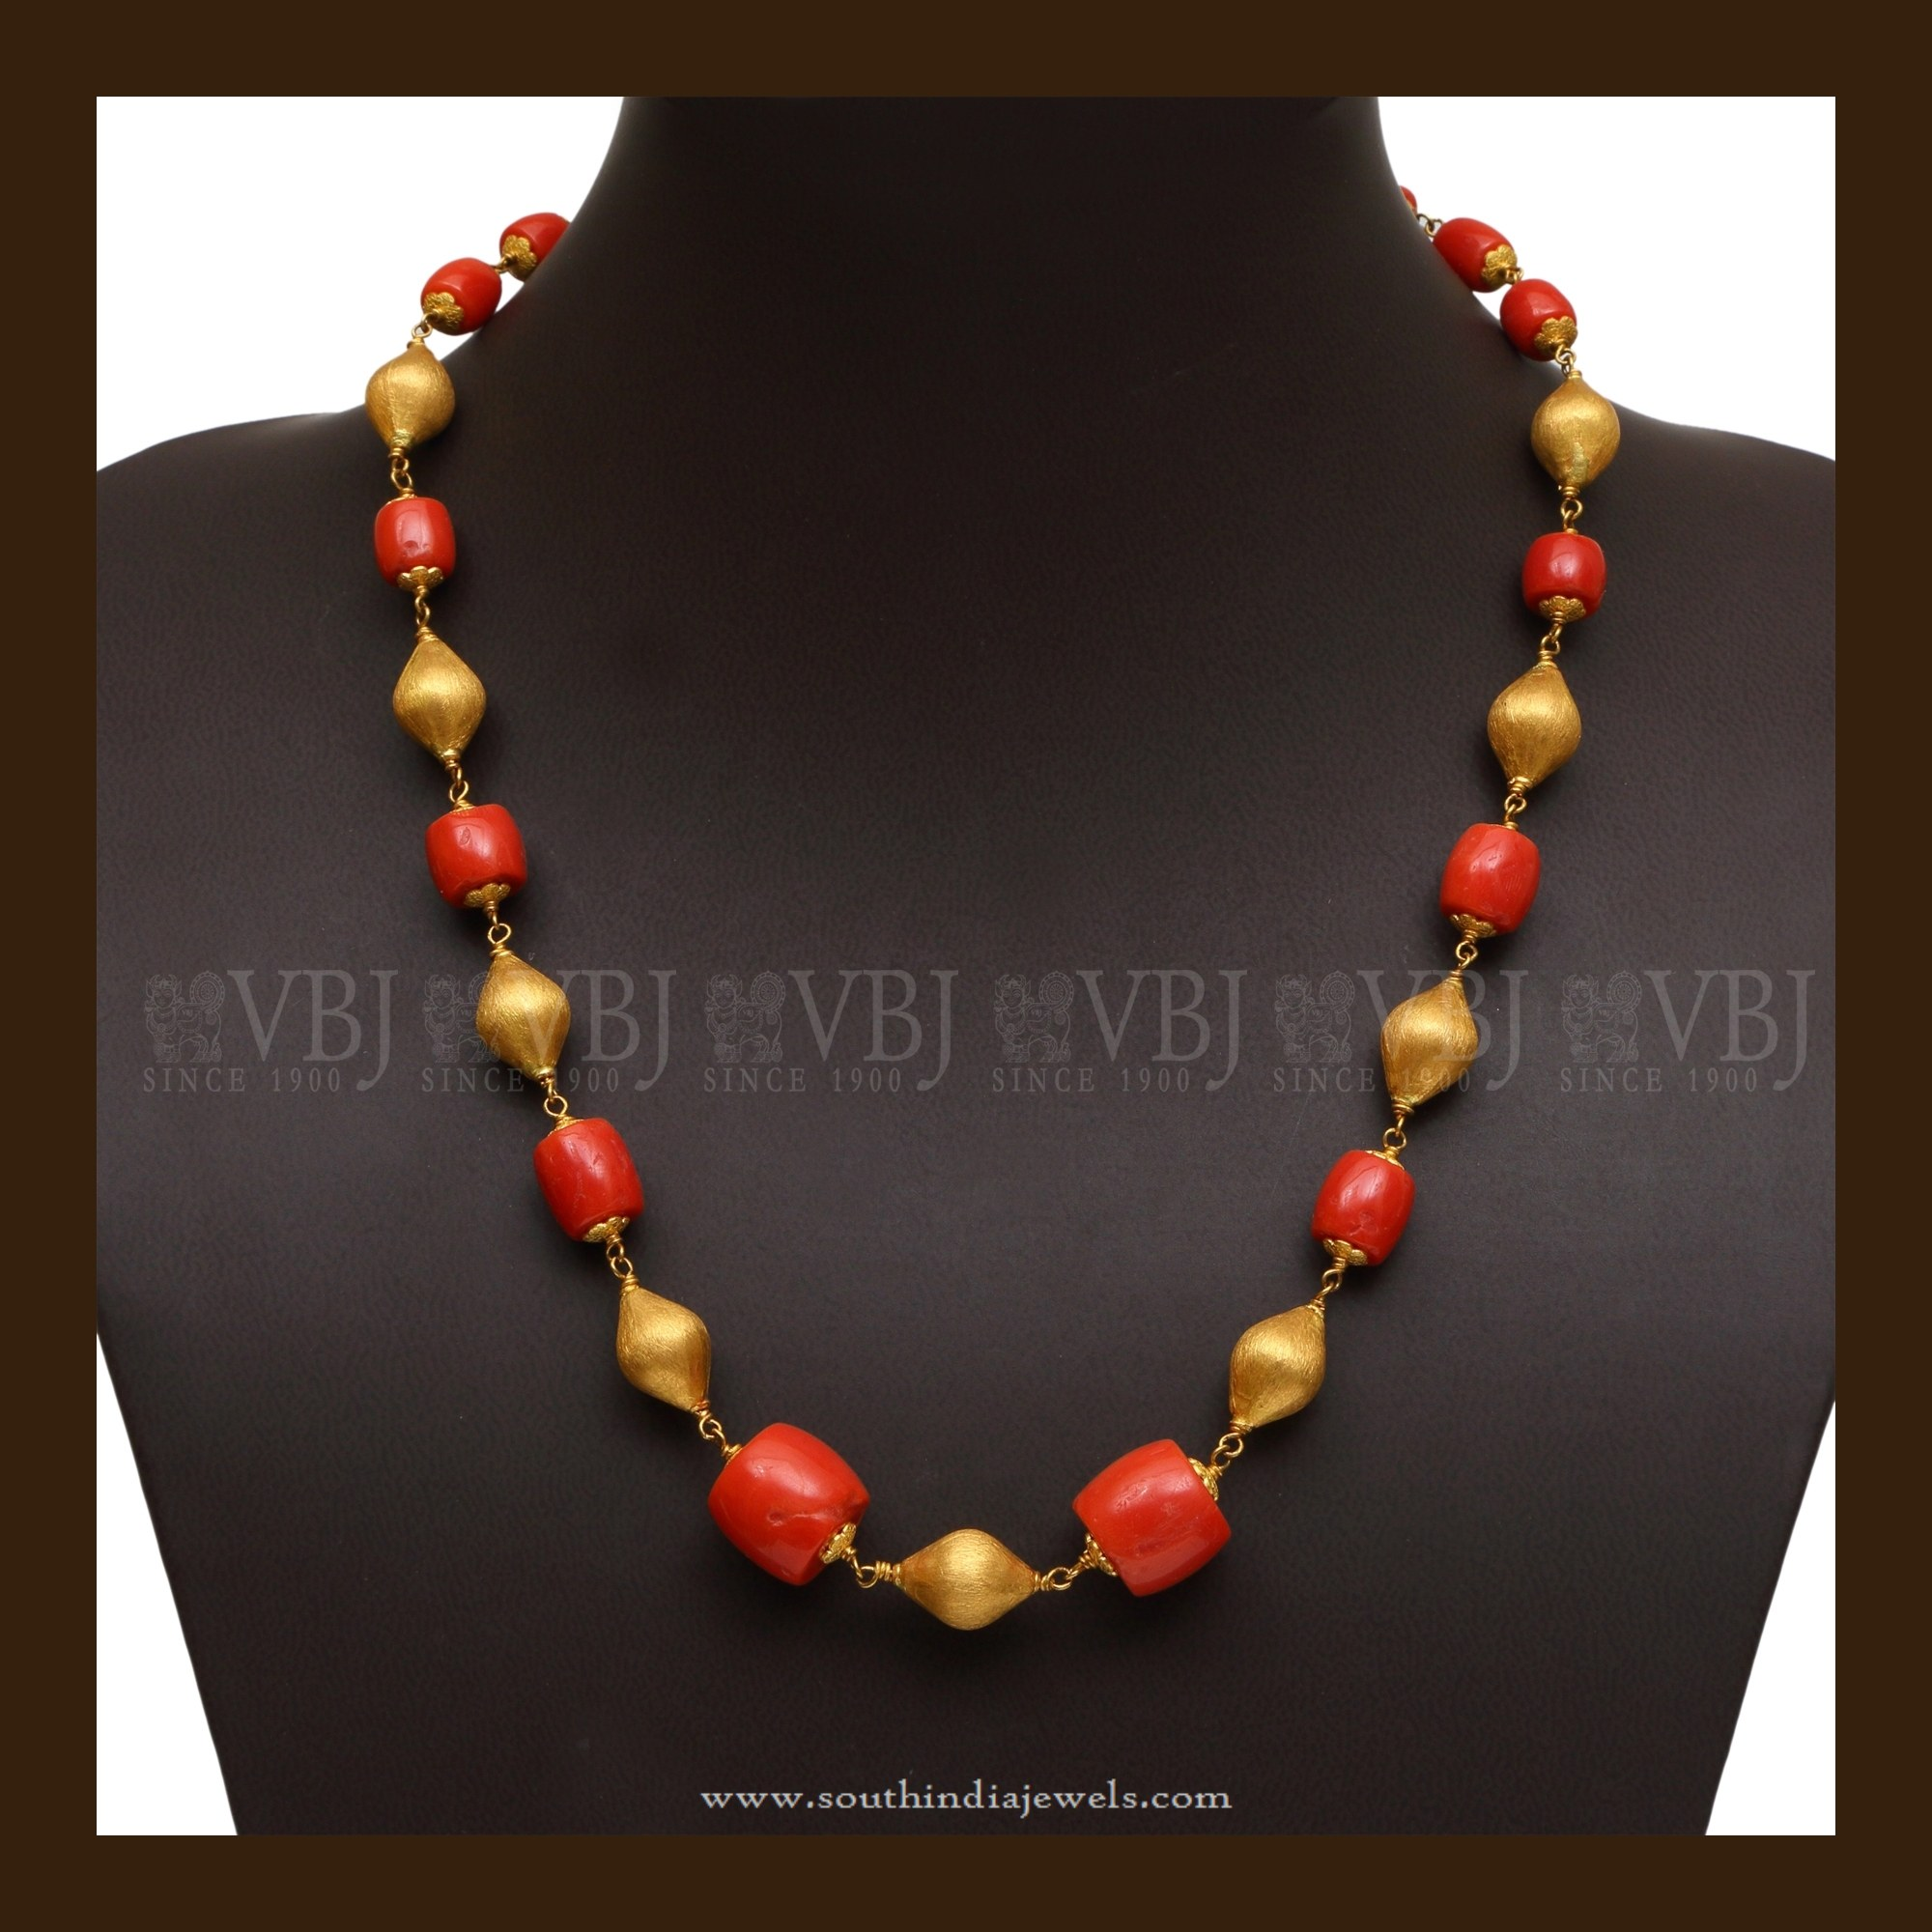 22K Gold Coral Mala South India Jewels